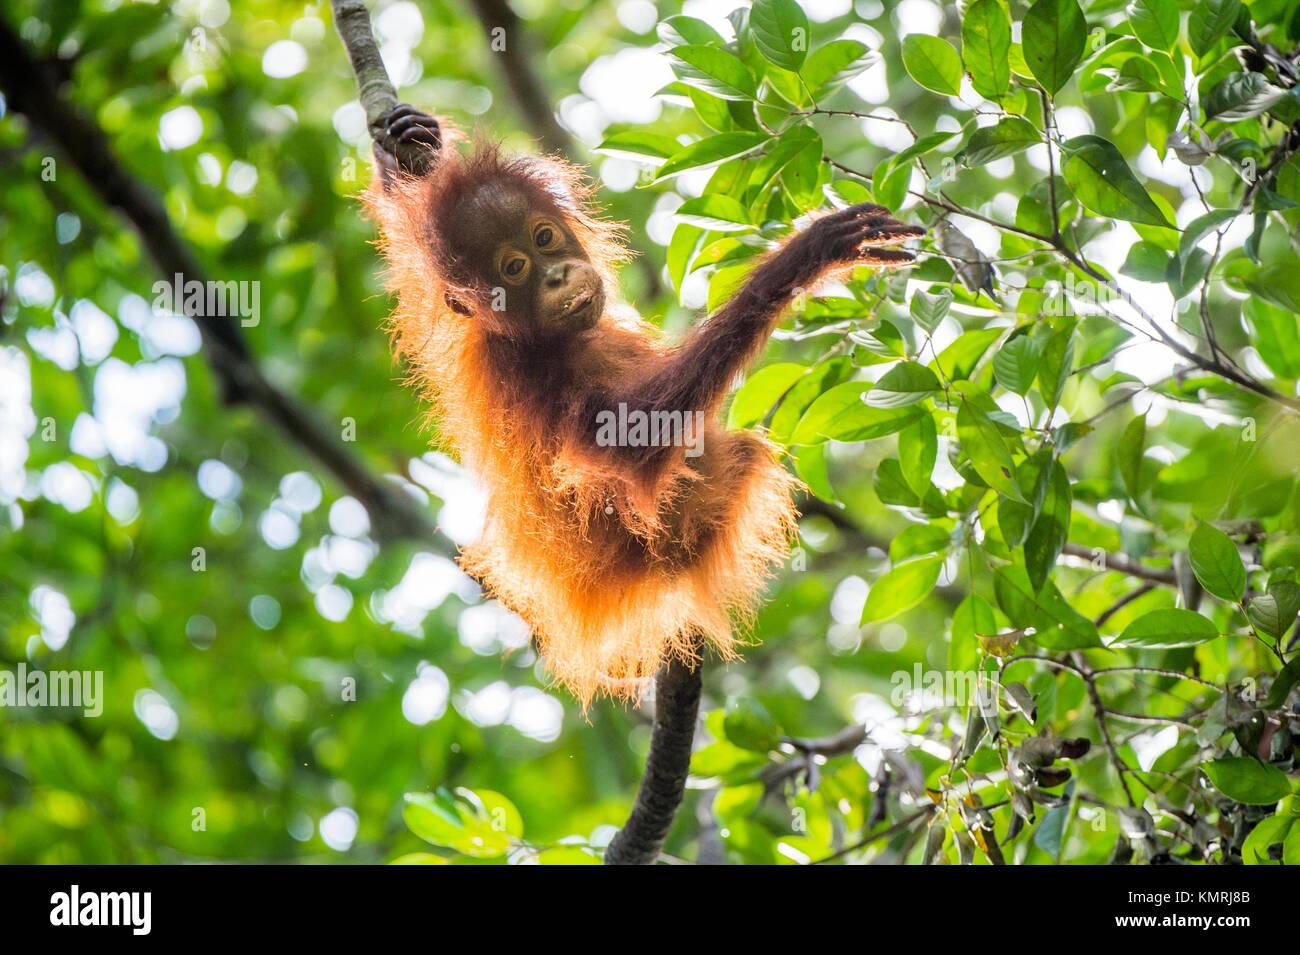 Baby orangutan (Pongo pygmaeus) on the tree. Natural green background. Borneo rainforest jungle, Indonesia. Stock Photo